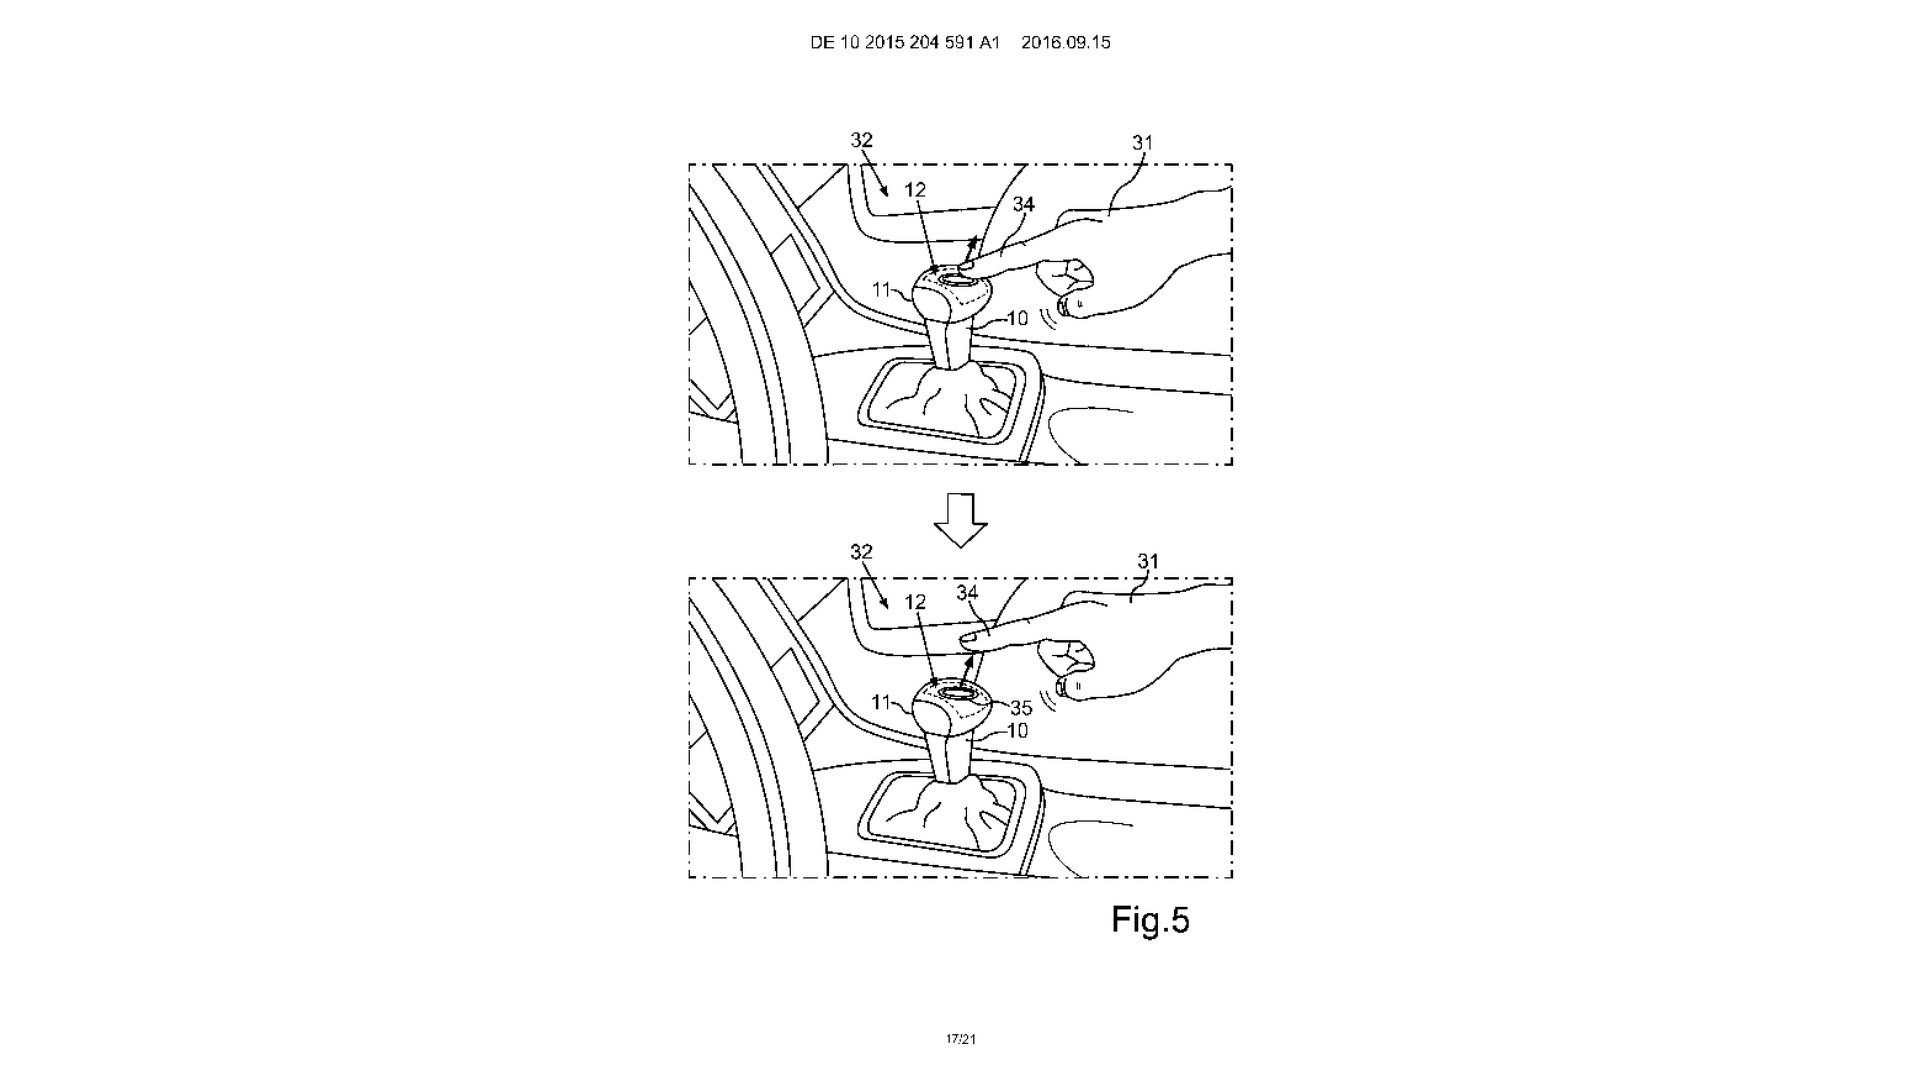 Vw patents self driving tech with simultaneous manual control from driver